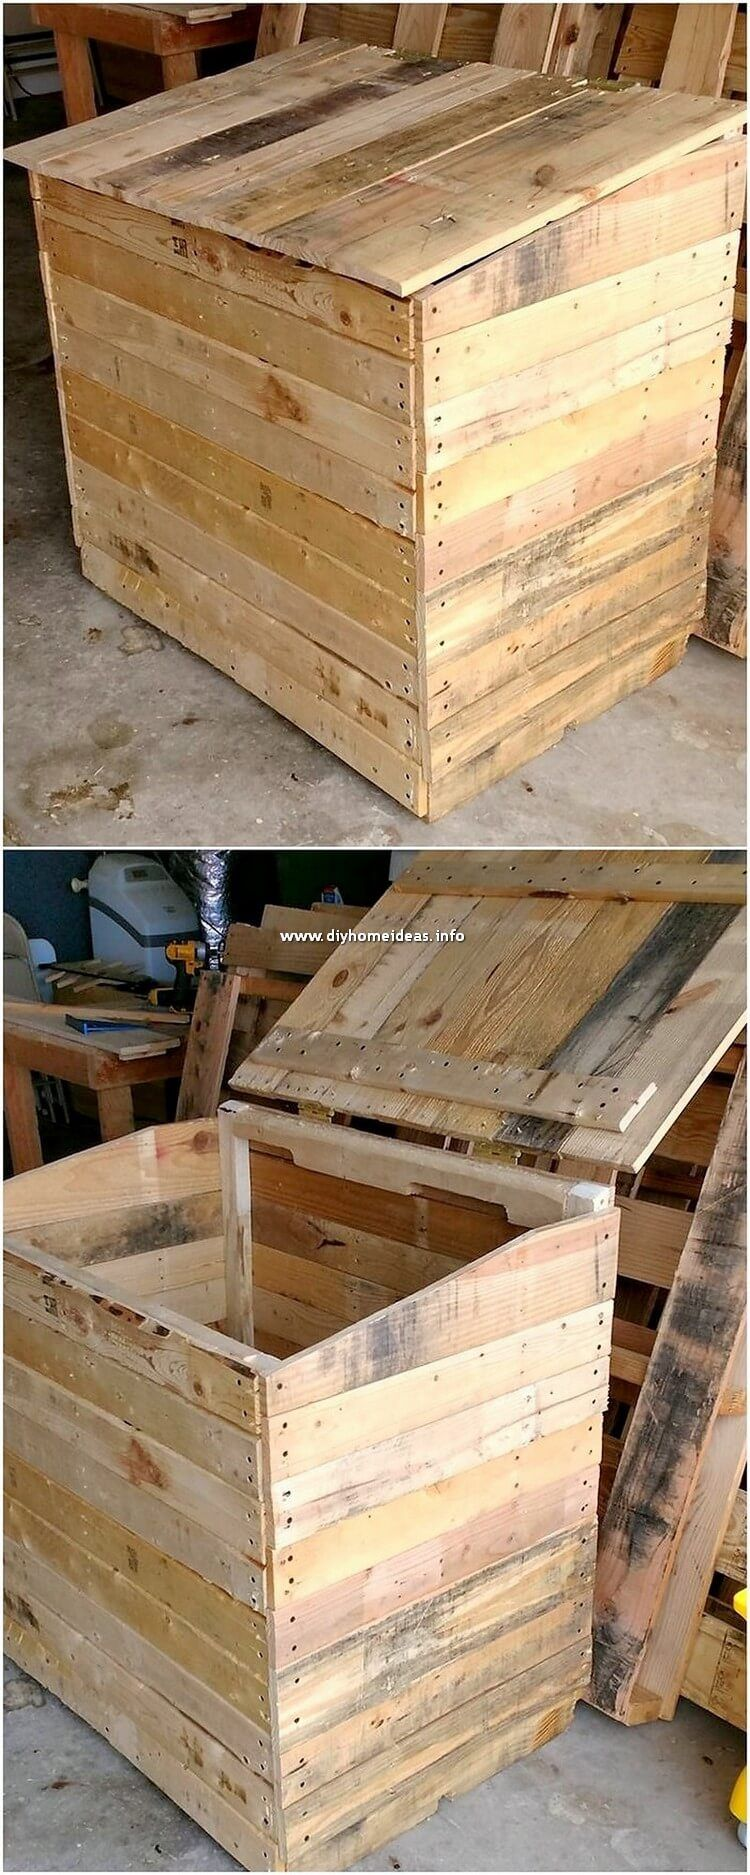 Perfect Ideas For Repurposing Wasted Wood Pallets Wood Pallets Wood Pallet Planters Pallet